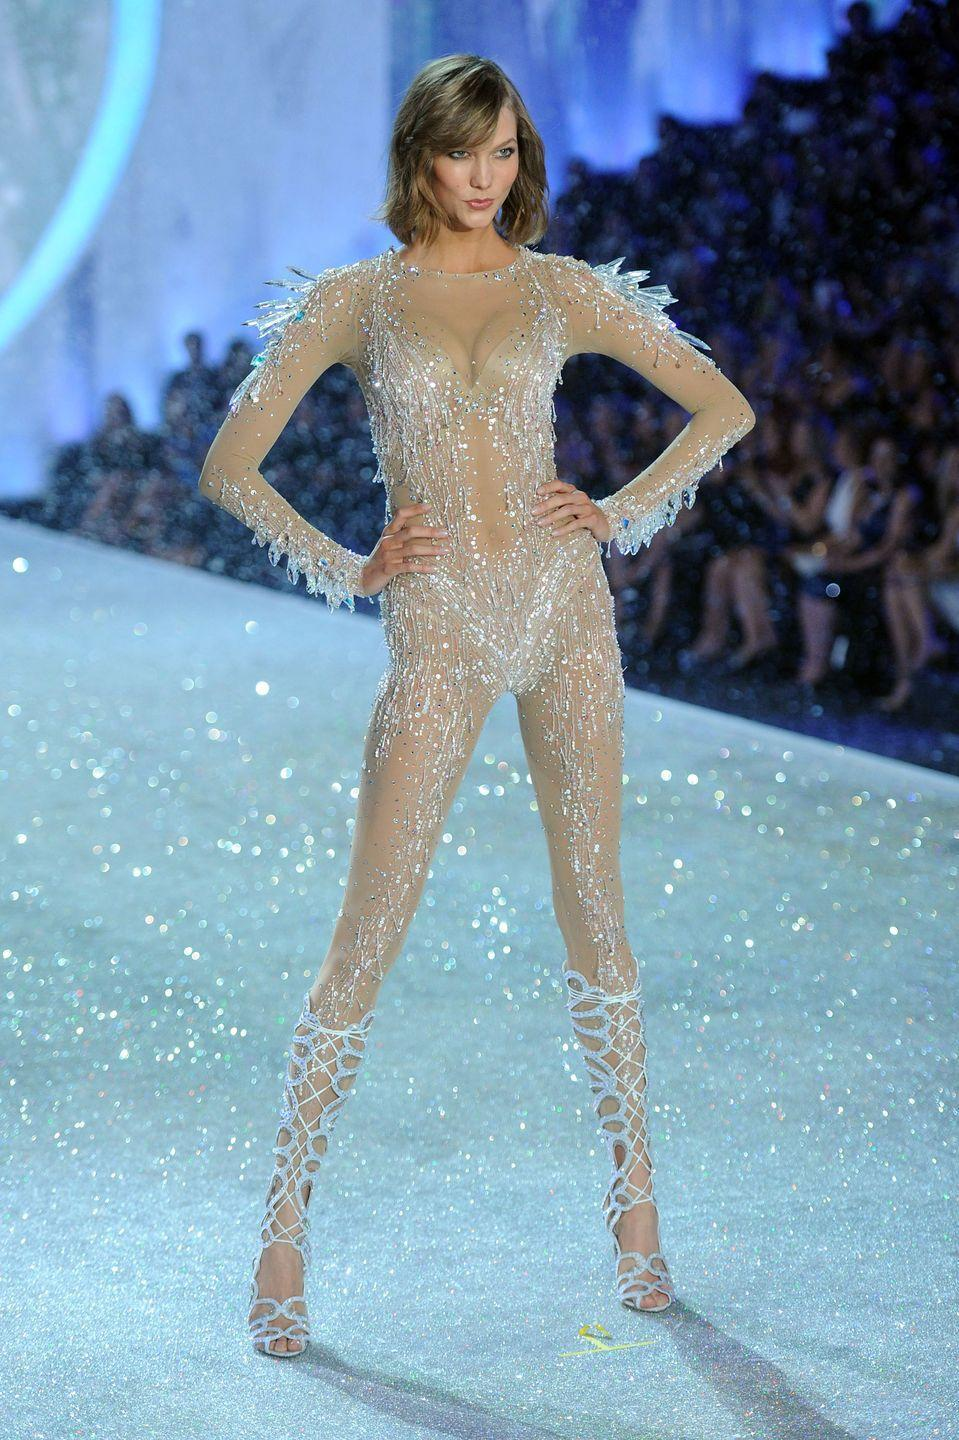 "<p>Long before walking the biggest shows at fashion week, Kloss walked a charity fashion show in her Missouri hometown. Then, at the age of 15, she made her New York Fashion Week debut on Calvin Klein's runway.</p><p>""I was discovered at 13 in a mall in St. Louis. I had never been on an airplane, actually."" she told <a href=""https://www.cbsnews.com/news/supermodel-karlie-kloss-new-york-fashion-week-coding/"" rel=""nofollow noopener"" target=""_blank"" data-ylk=""slk:CBS"" class=""link rapid-noclick-resp"">CBS</a> in 2015.</p><p>Since, Kloss has walked every major runway in New York, London, Milan, and Paris—along with starring in campaigns for brands like Oscar de la Renta, Versace, and Diane von Furstenberg. In 2015, she partnered with Flatiron School and Code.org to create a scholarship program, <a href=""https://www.kodewithklossy.com/"" rel=""nofollow noopener"" target=""_blank"" data-ylk=""slk:Kode with Klossy,"" class=""link rapid-noclick-resp"">Kode with Klossy,</a> which supports young girls who are interested in computer science to become leaders in tech. </p>"